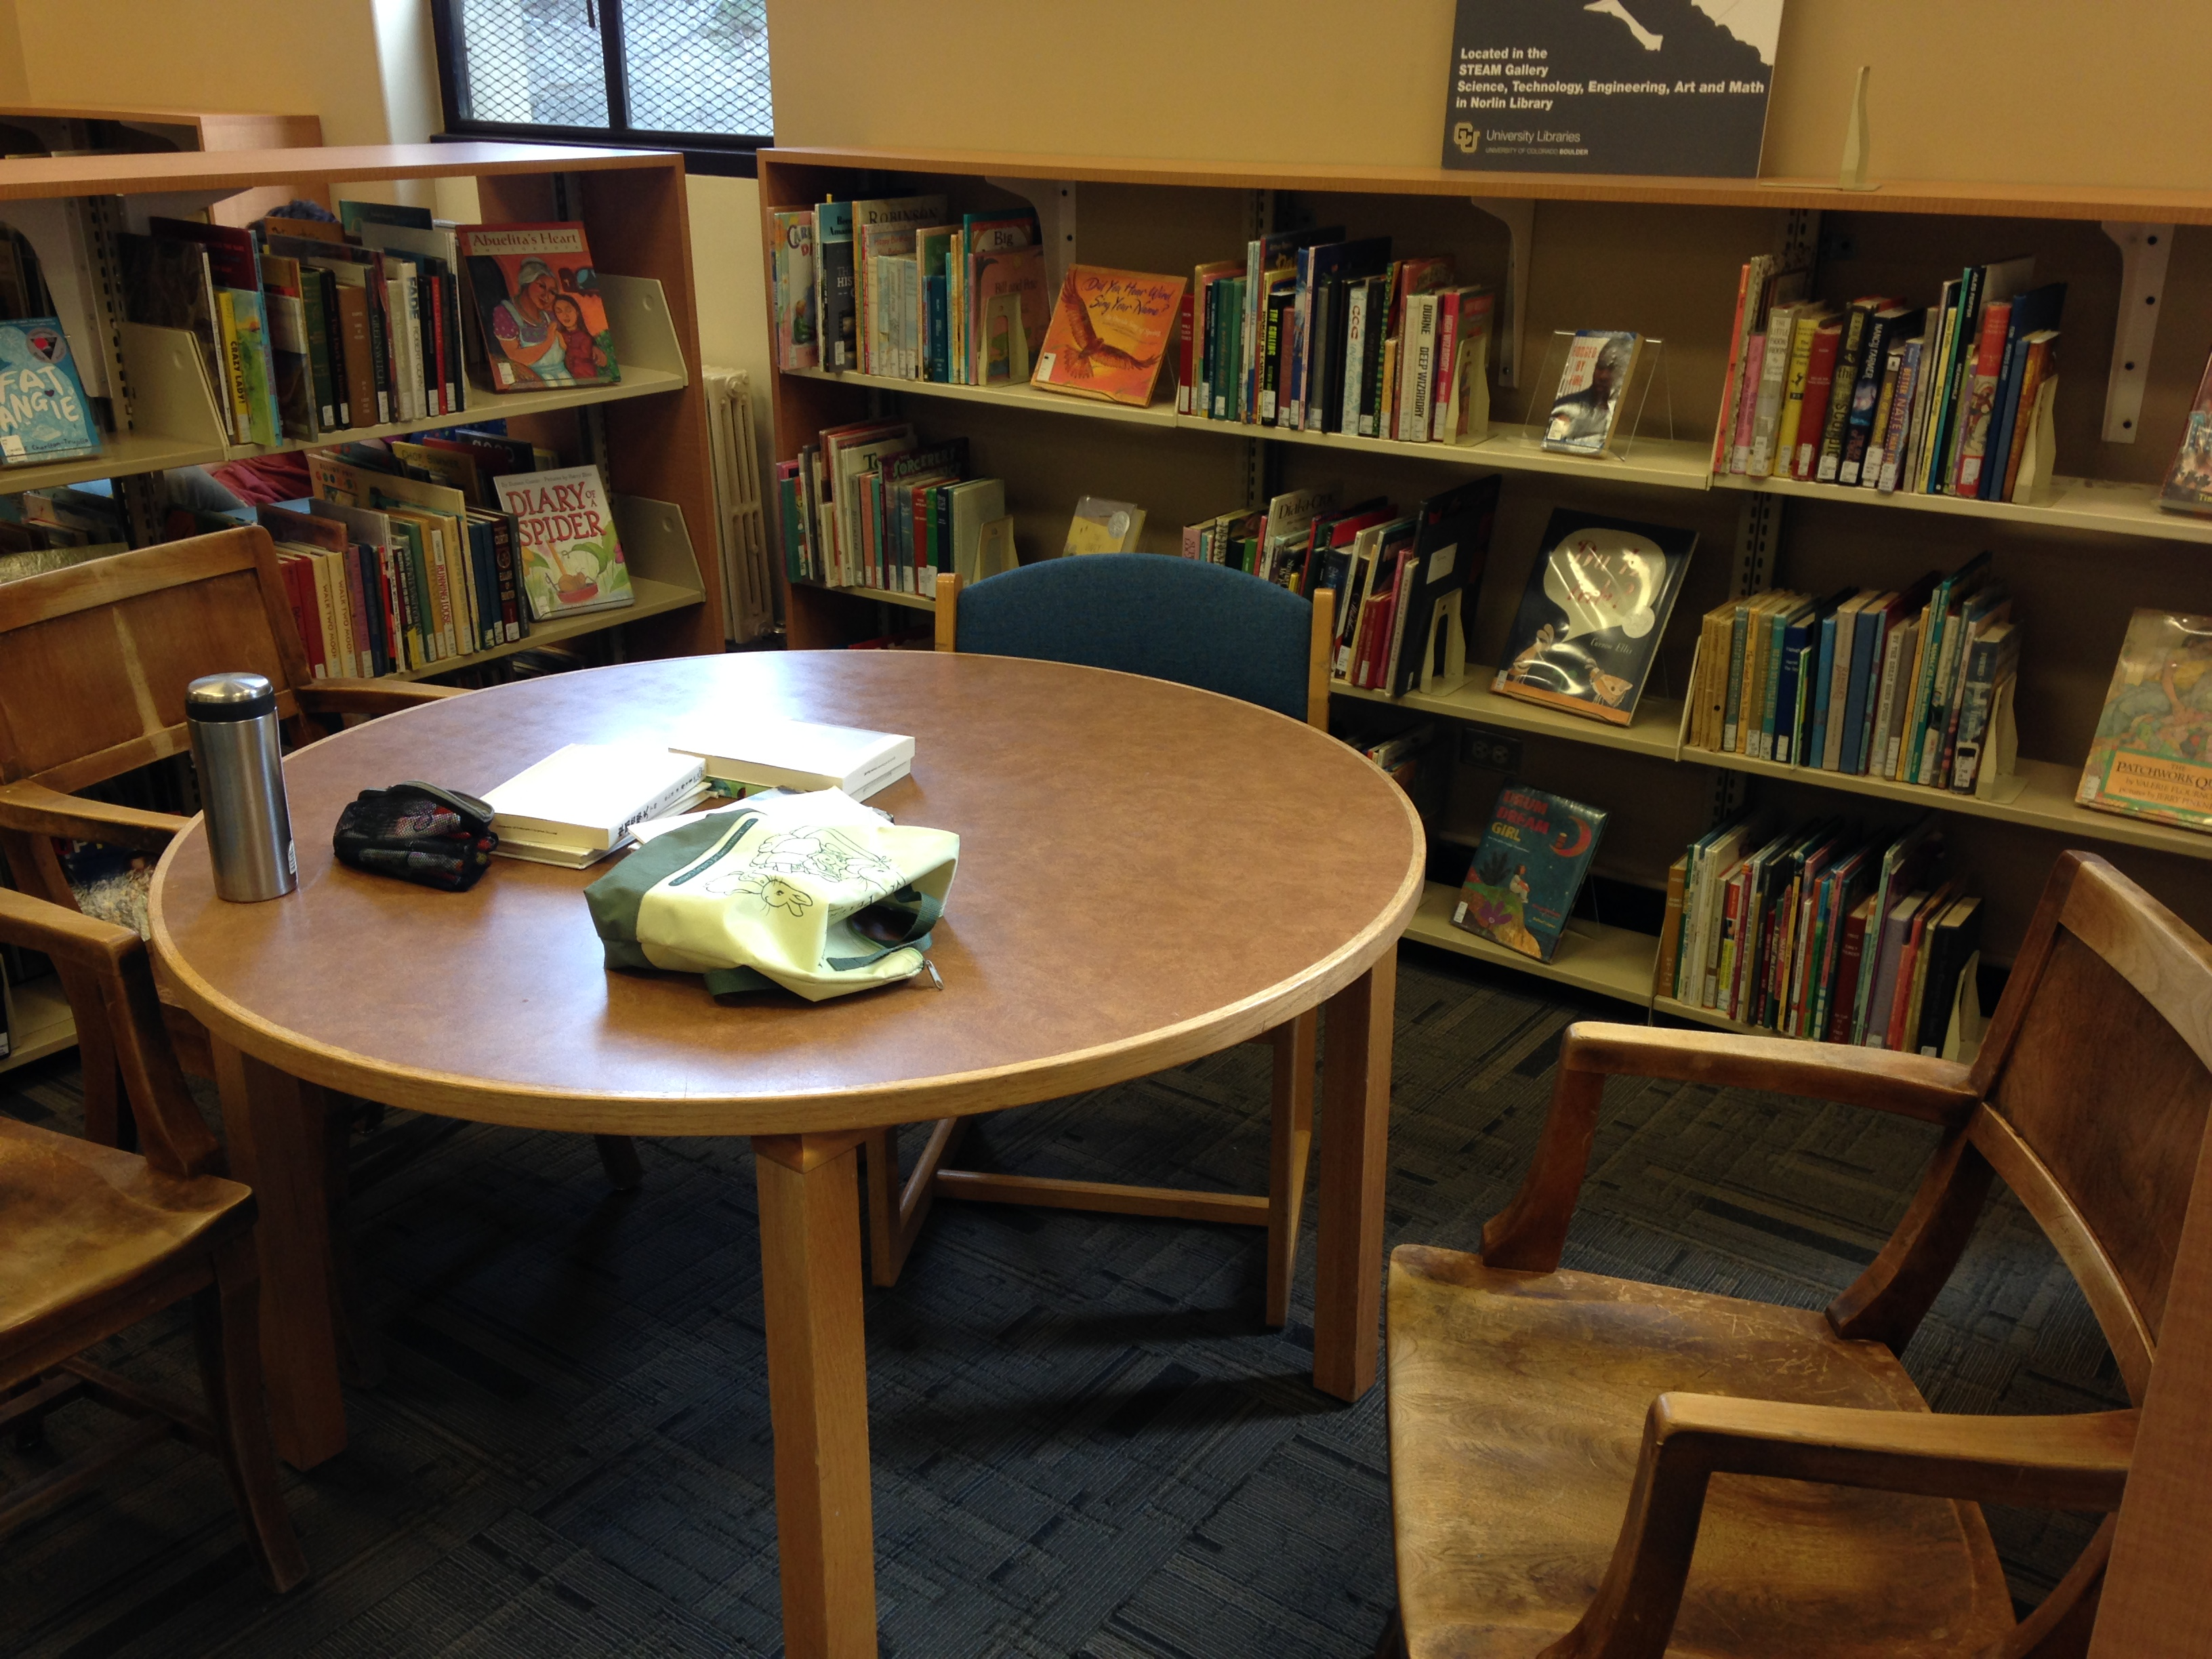 Children's and Young Adult Collection in Norlin Library